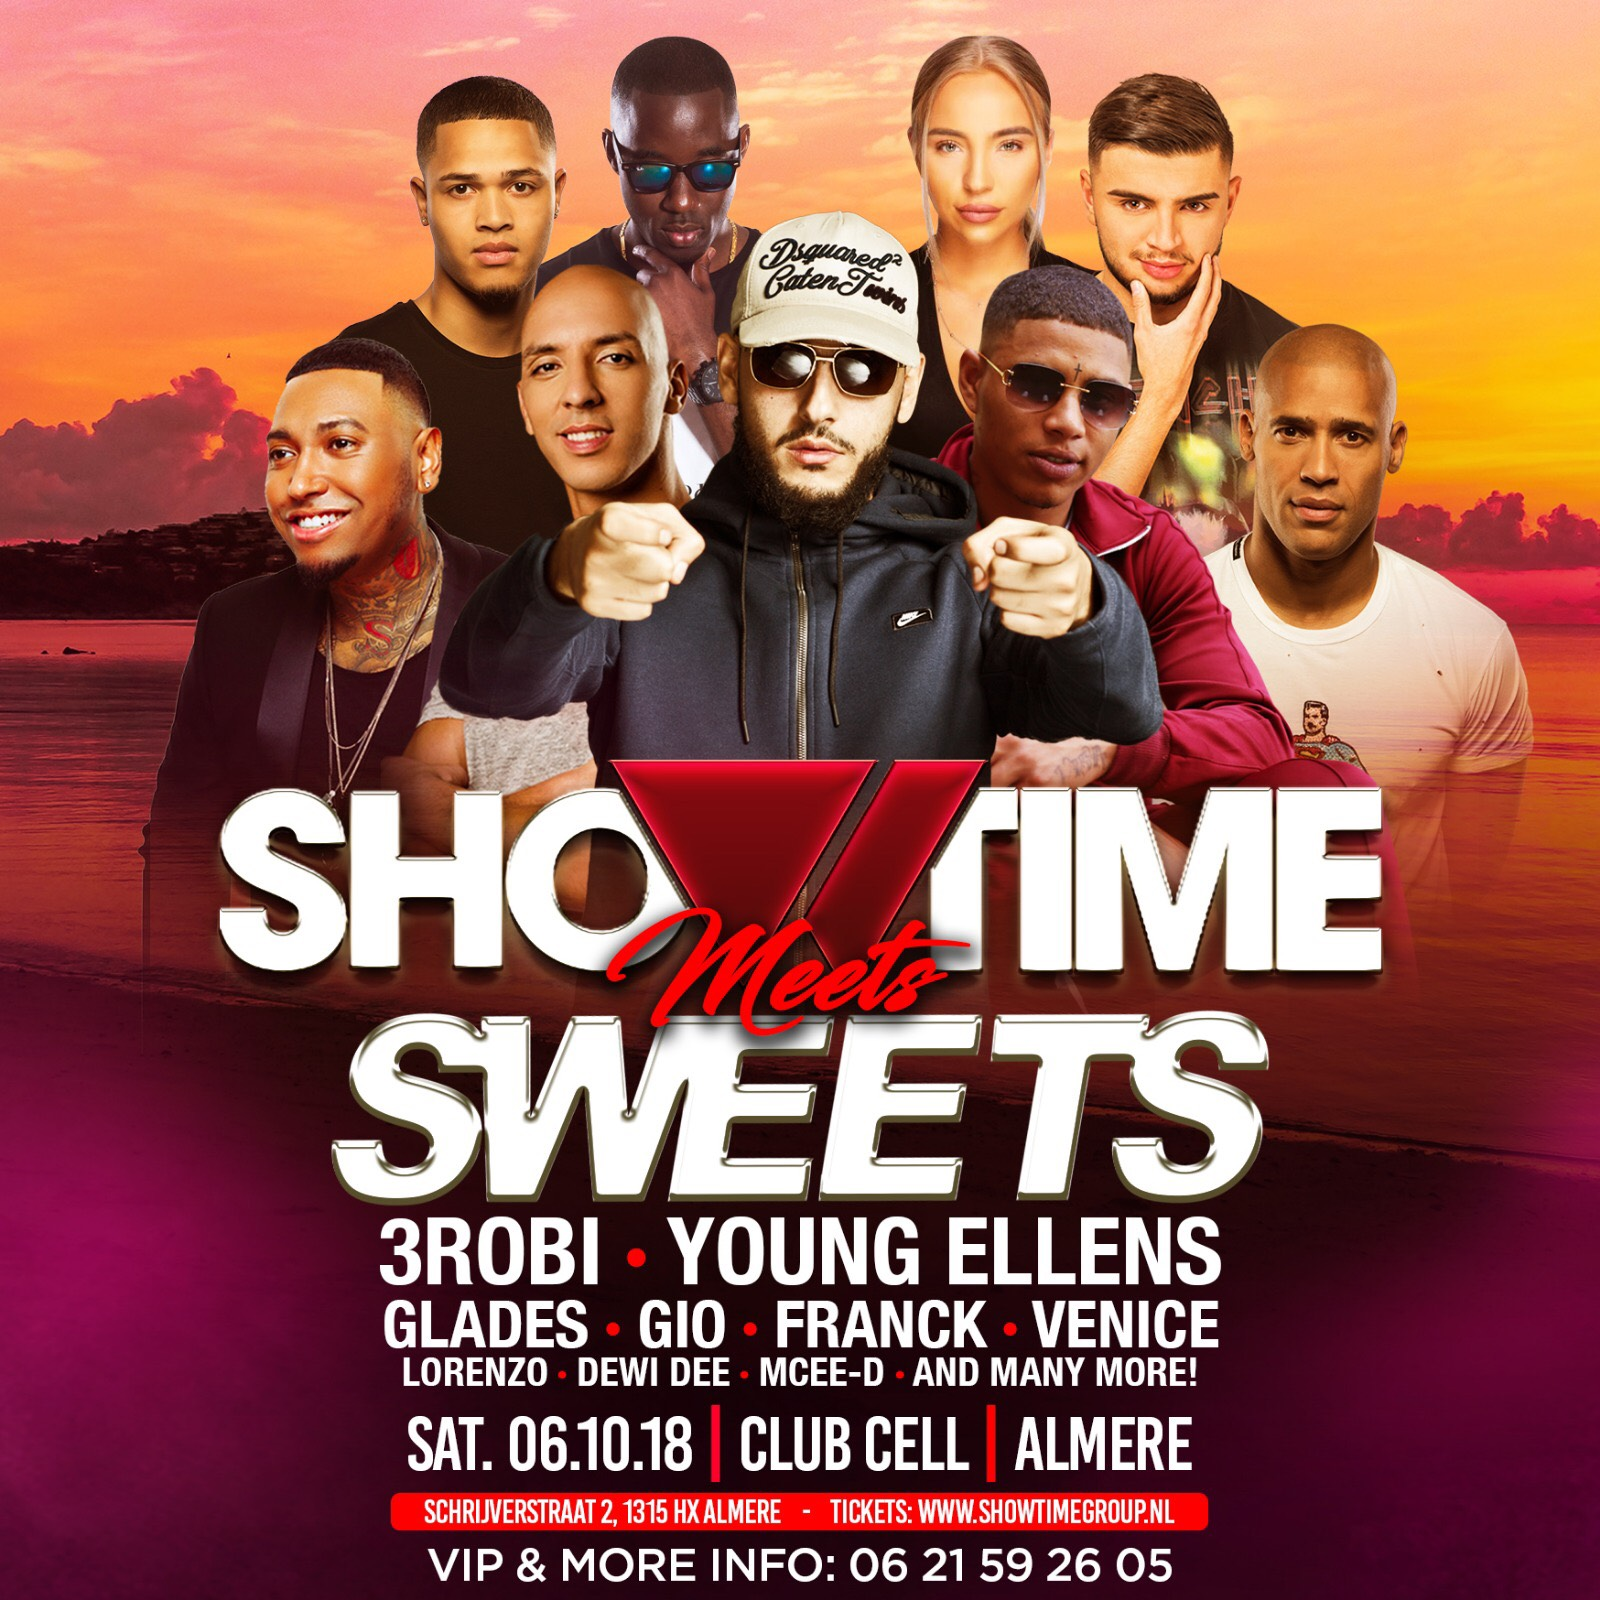 Showtime x sweets